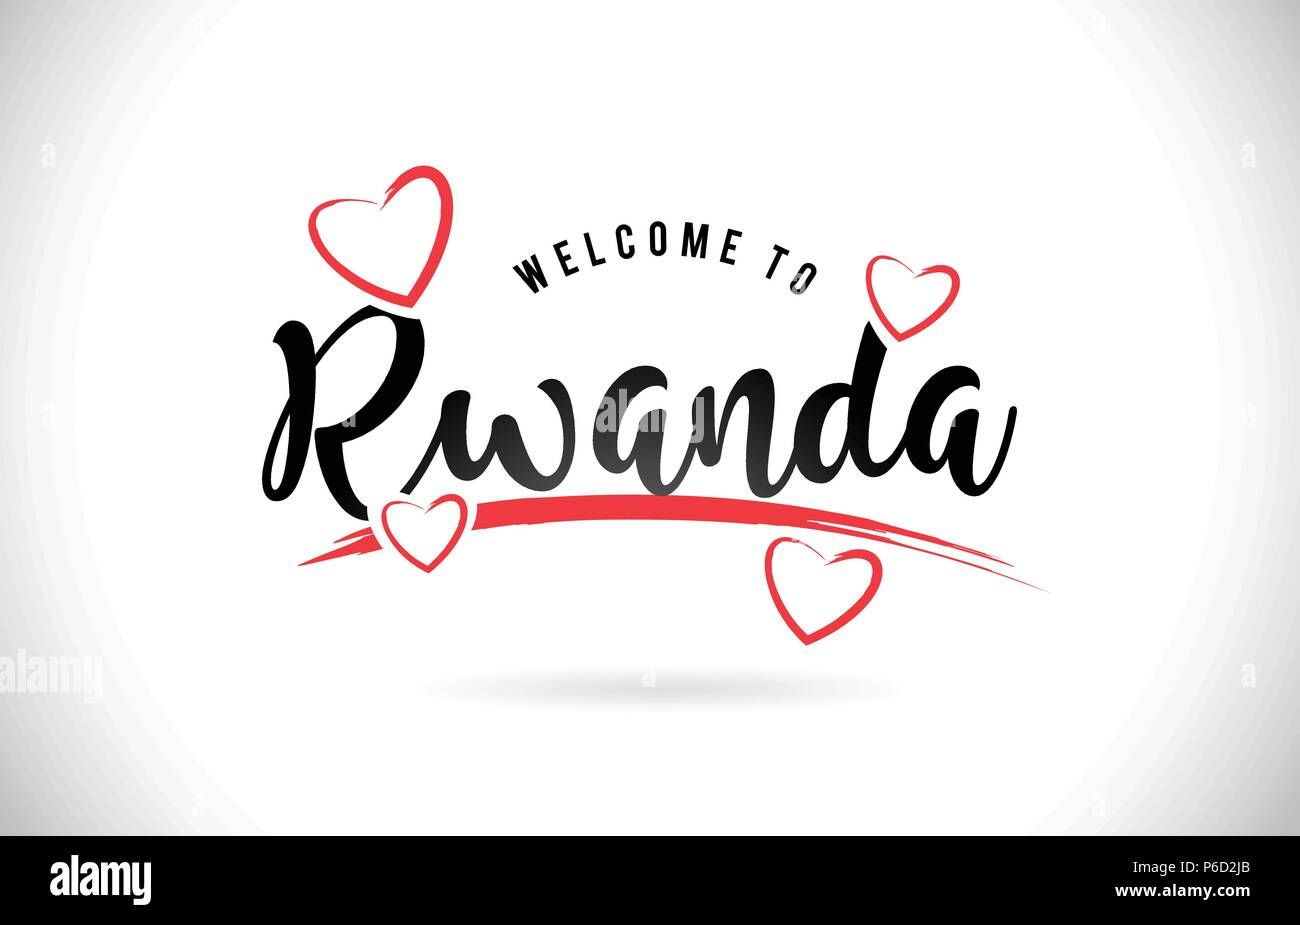 Rwanda Welcome To Word Text with Handwritten Font and Red Love Hearts Vector Image Illustration Eps. - Stock Vector